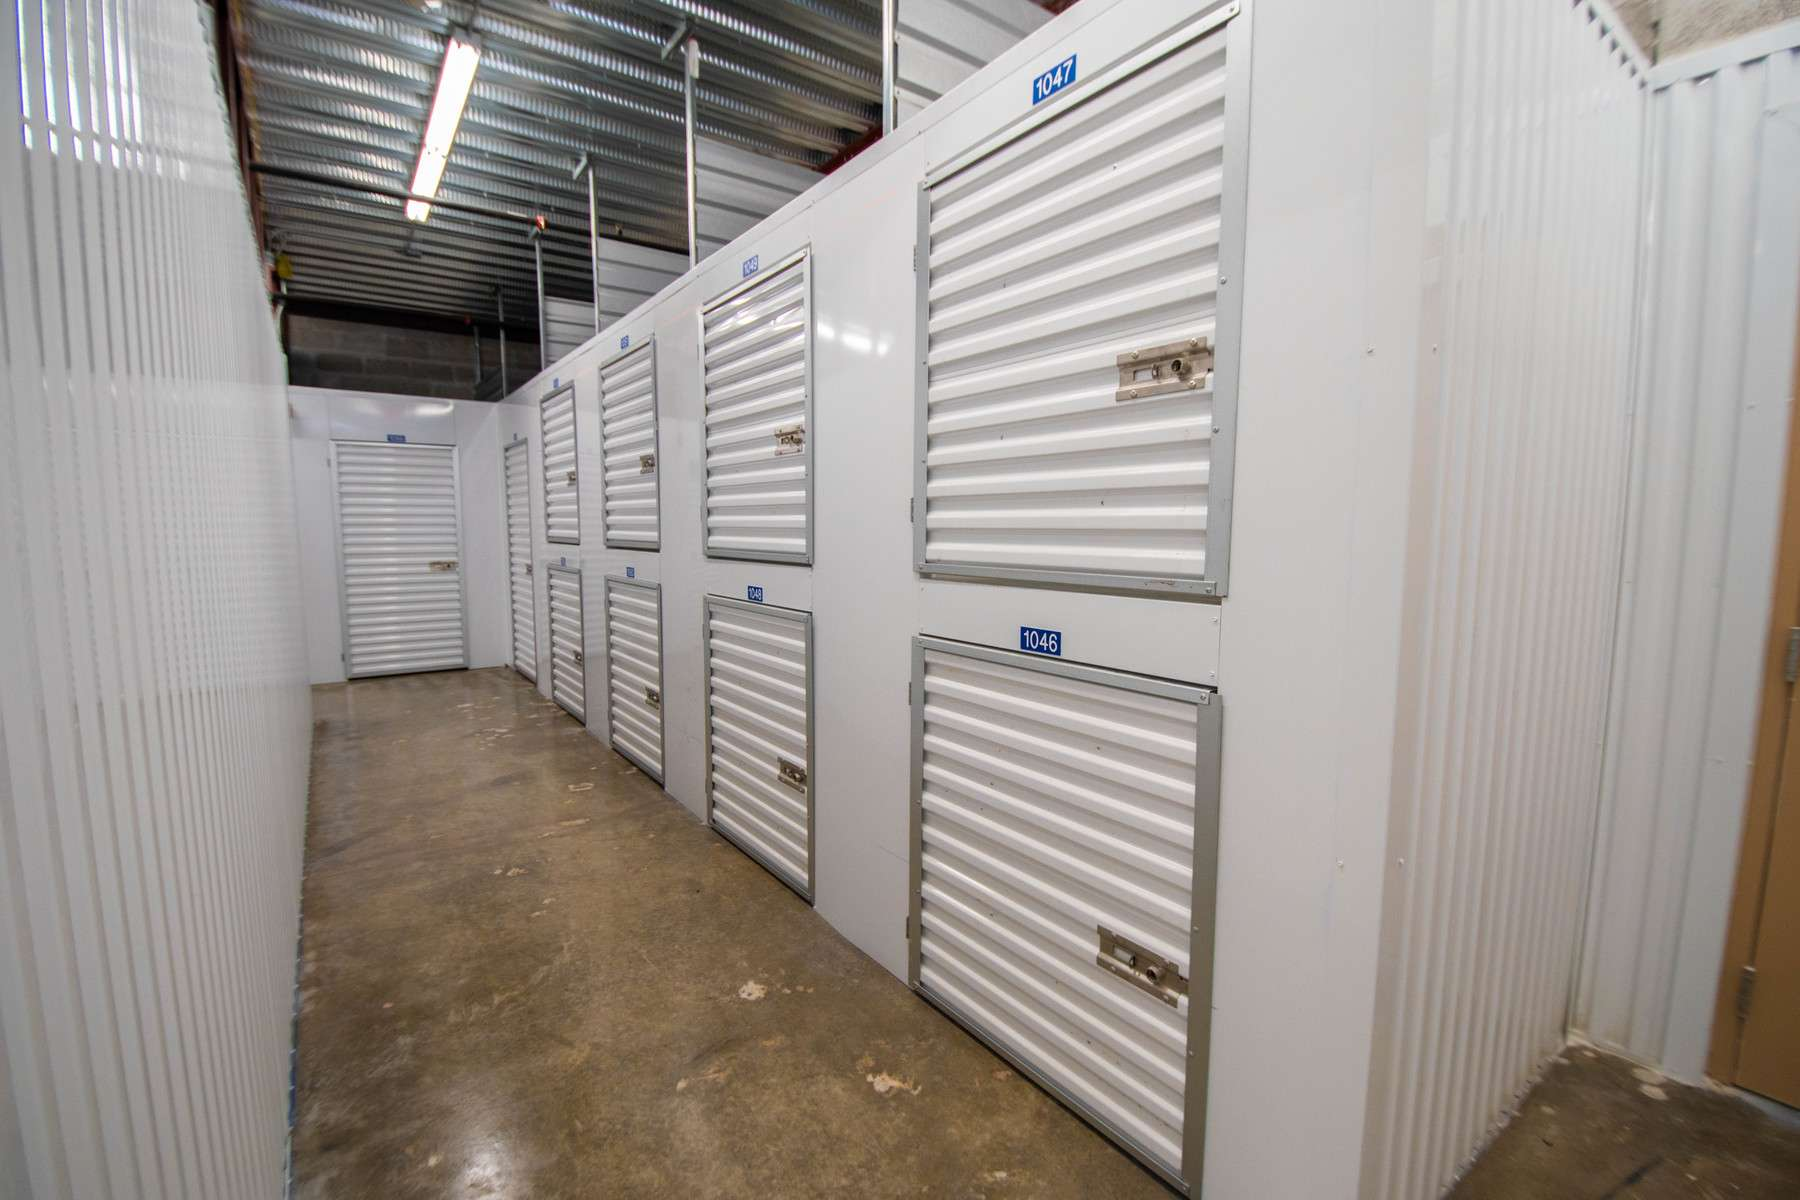 441 Lantana Storage. 5851 State Road 7. Lake Worth, FL 33449. Phone:  561 557 5940. Email: Info@441lantanastorage.com